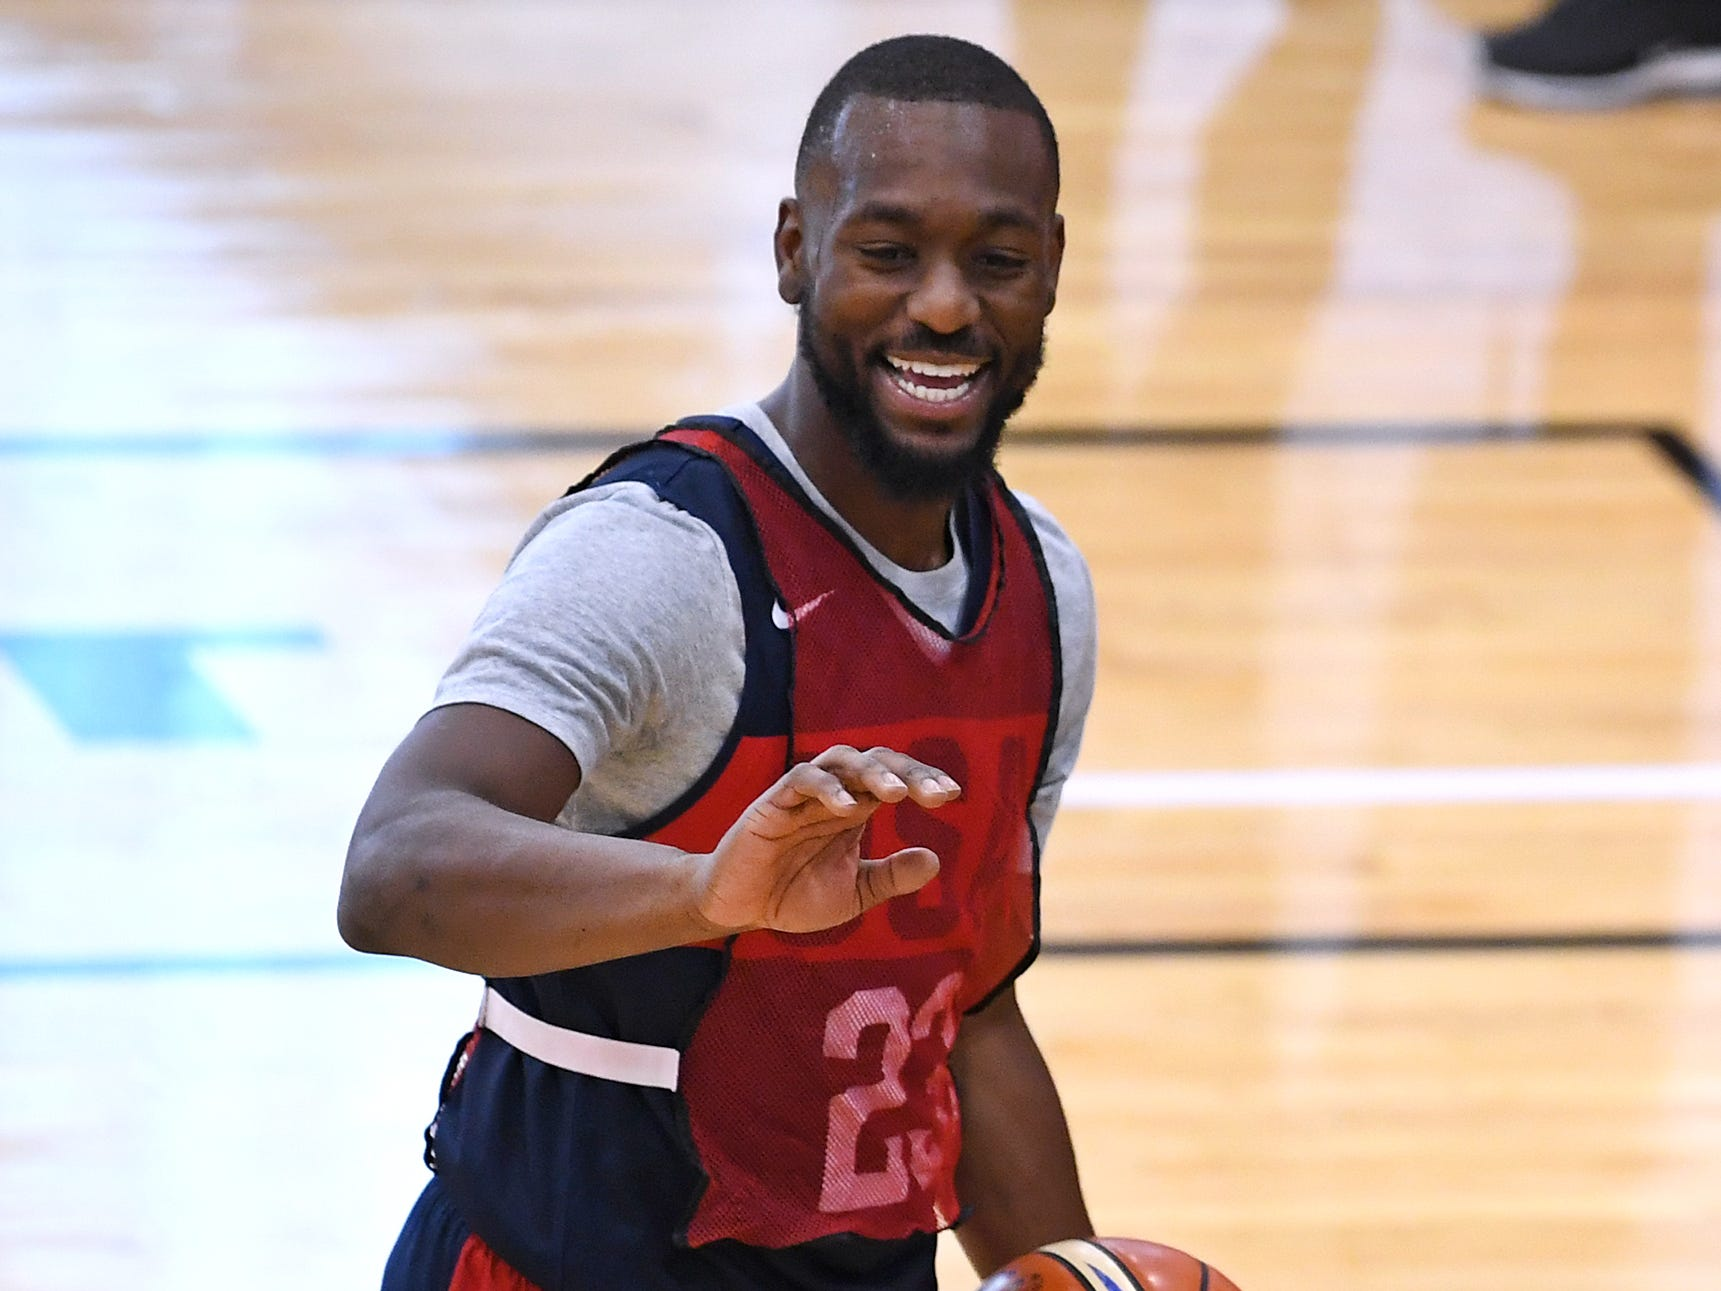 Kemba Walker is pictured during the 2018 USA Basketball National Team Minicamp.